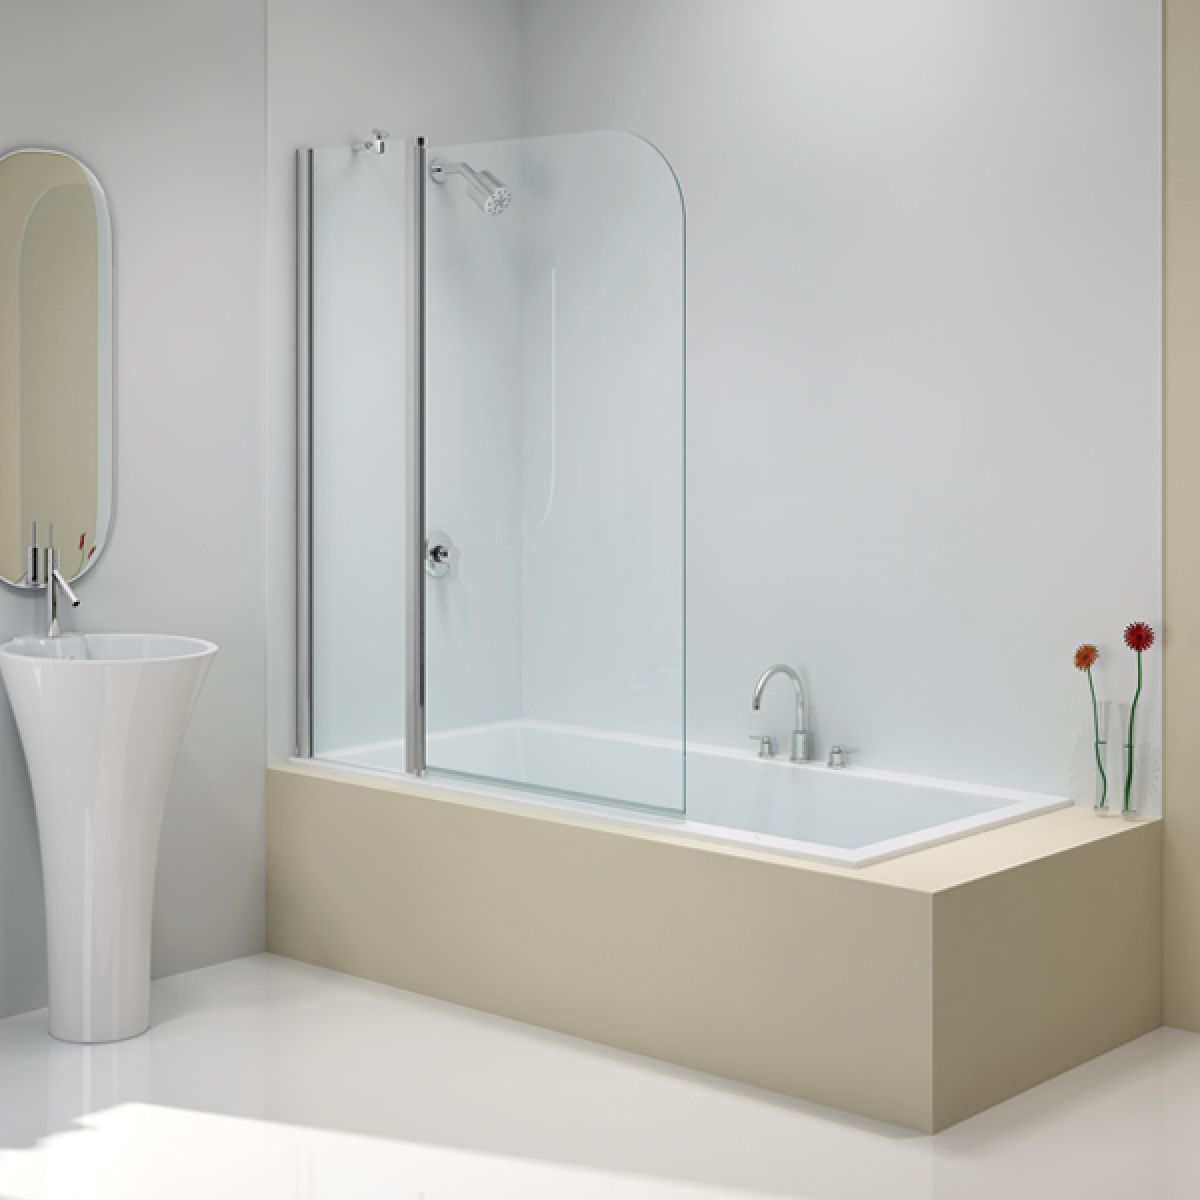 Merlyn Ionic Two Panel Folding Curved Bathscreen